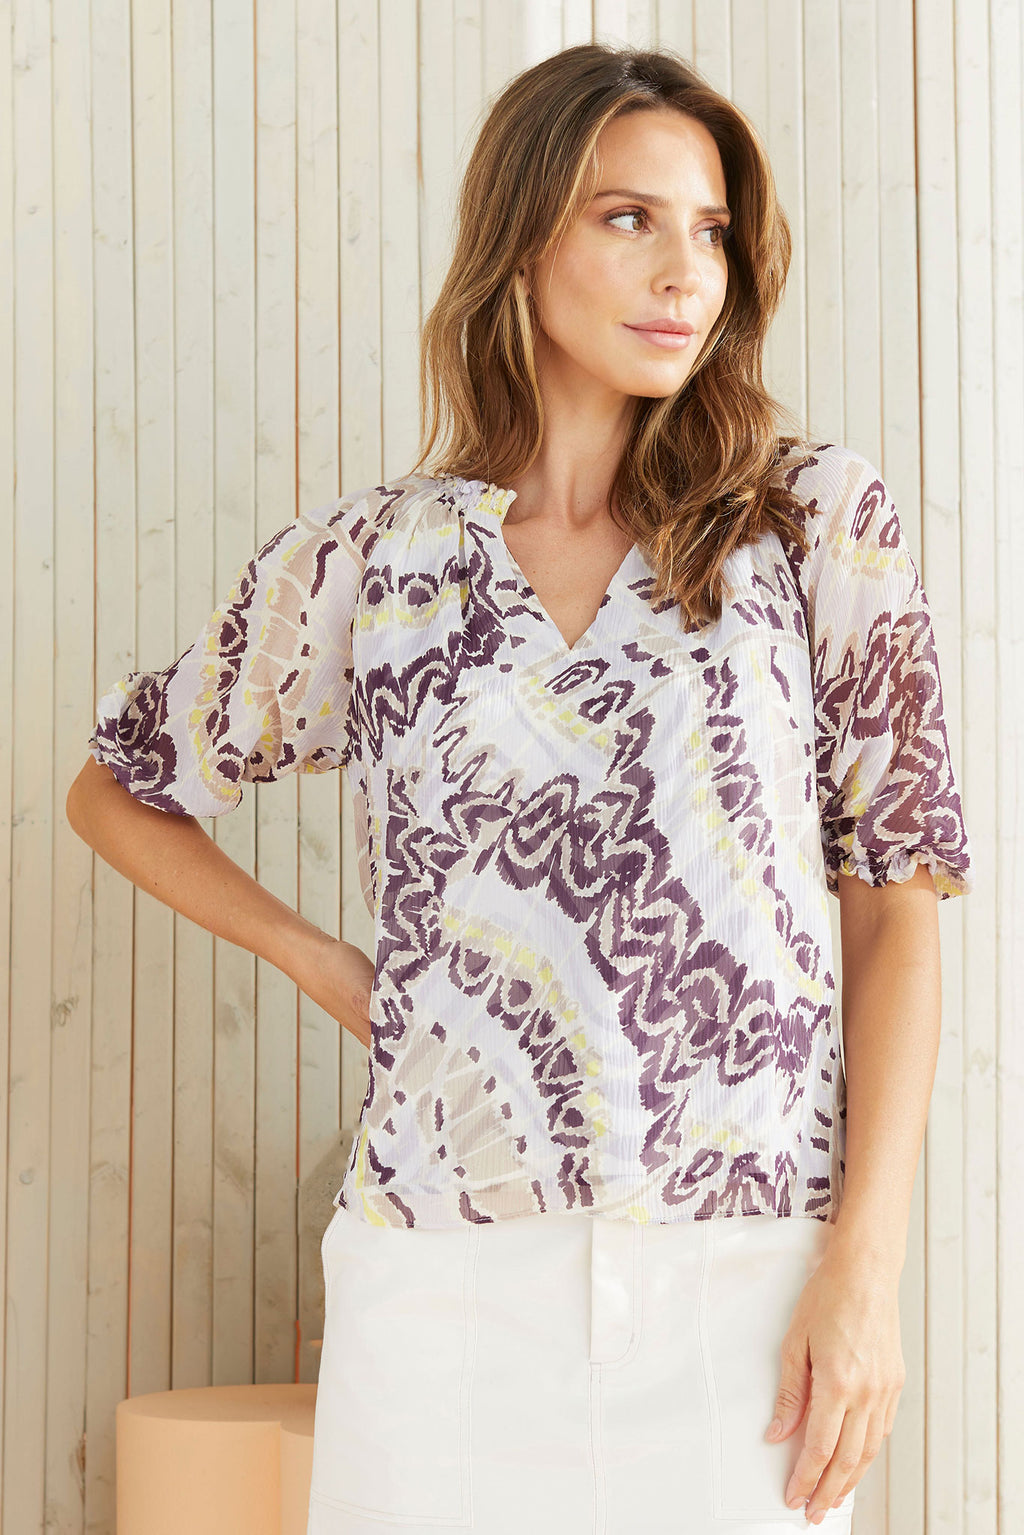 Kori Blouse in Berry butterfly worn with the Braden in Cool White.